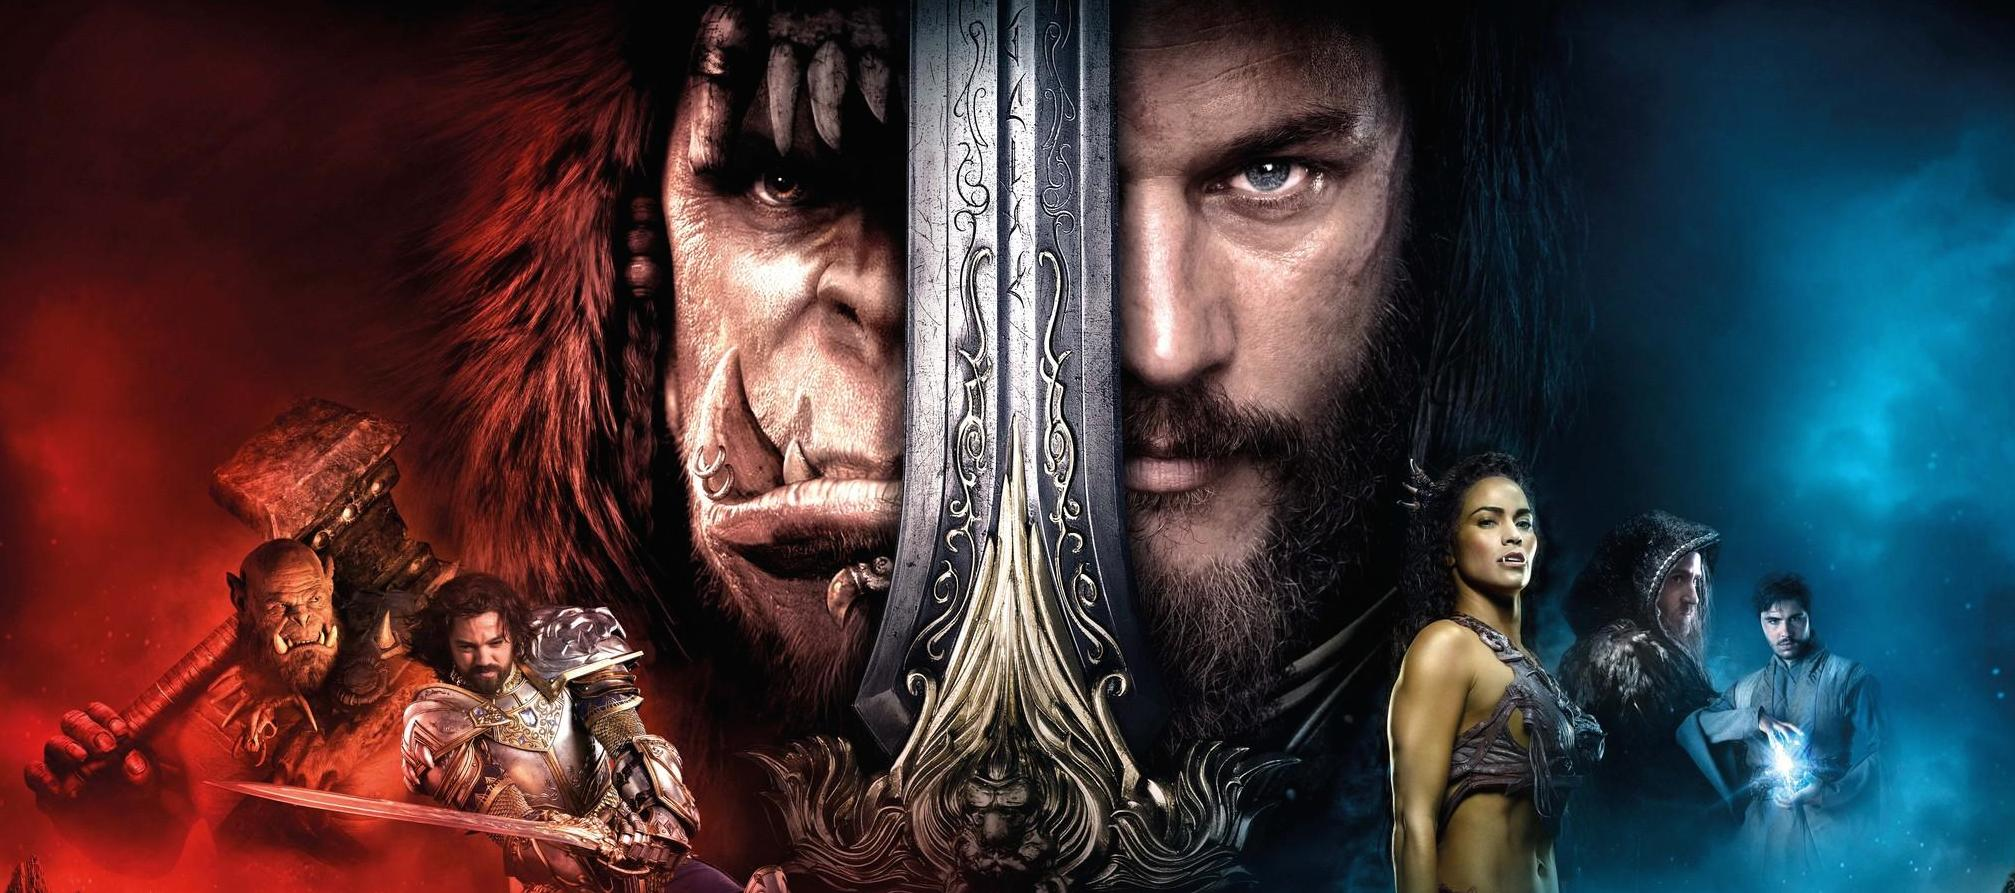 Lawsuit Claims Universal Pictures Spammed Phones With Unsolicited 'Warcraft' Texts